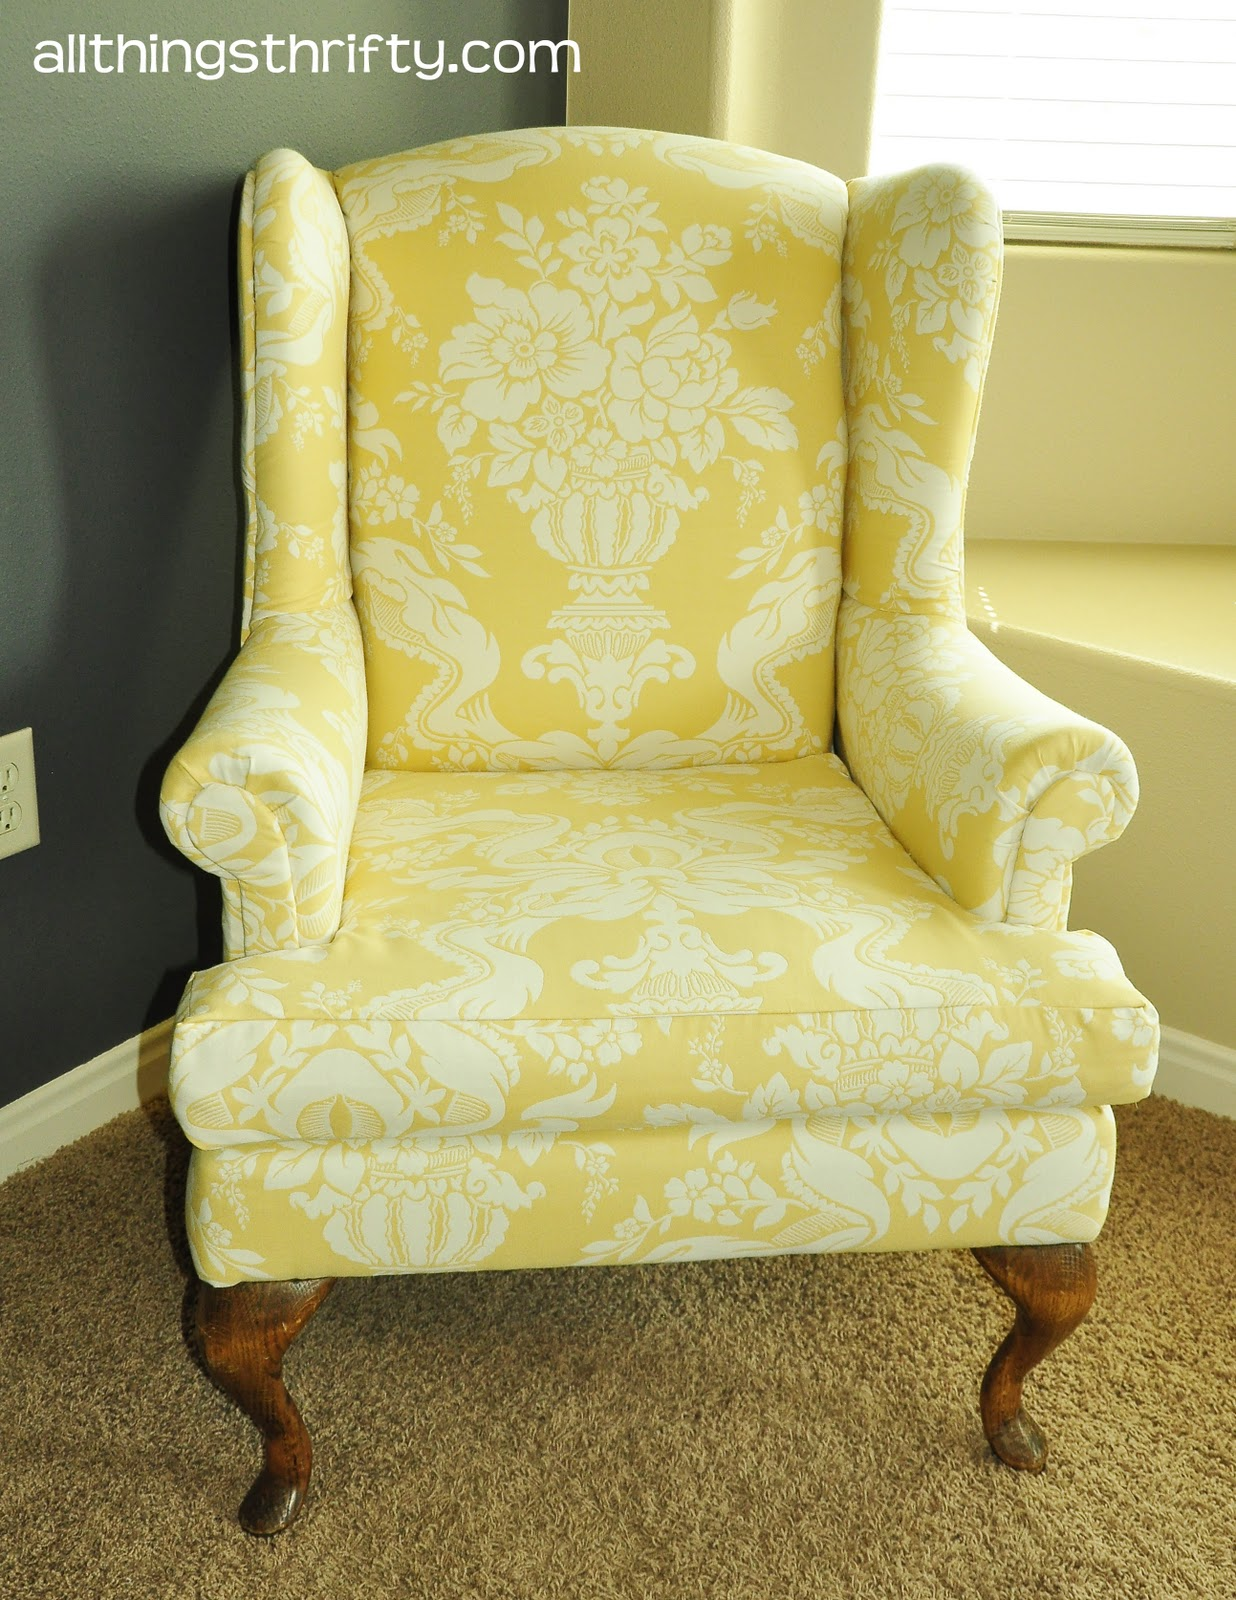 upholstering a wing back chair, upholstery tips | all things thrifty